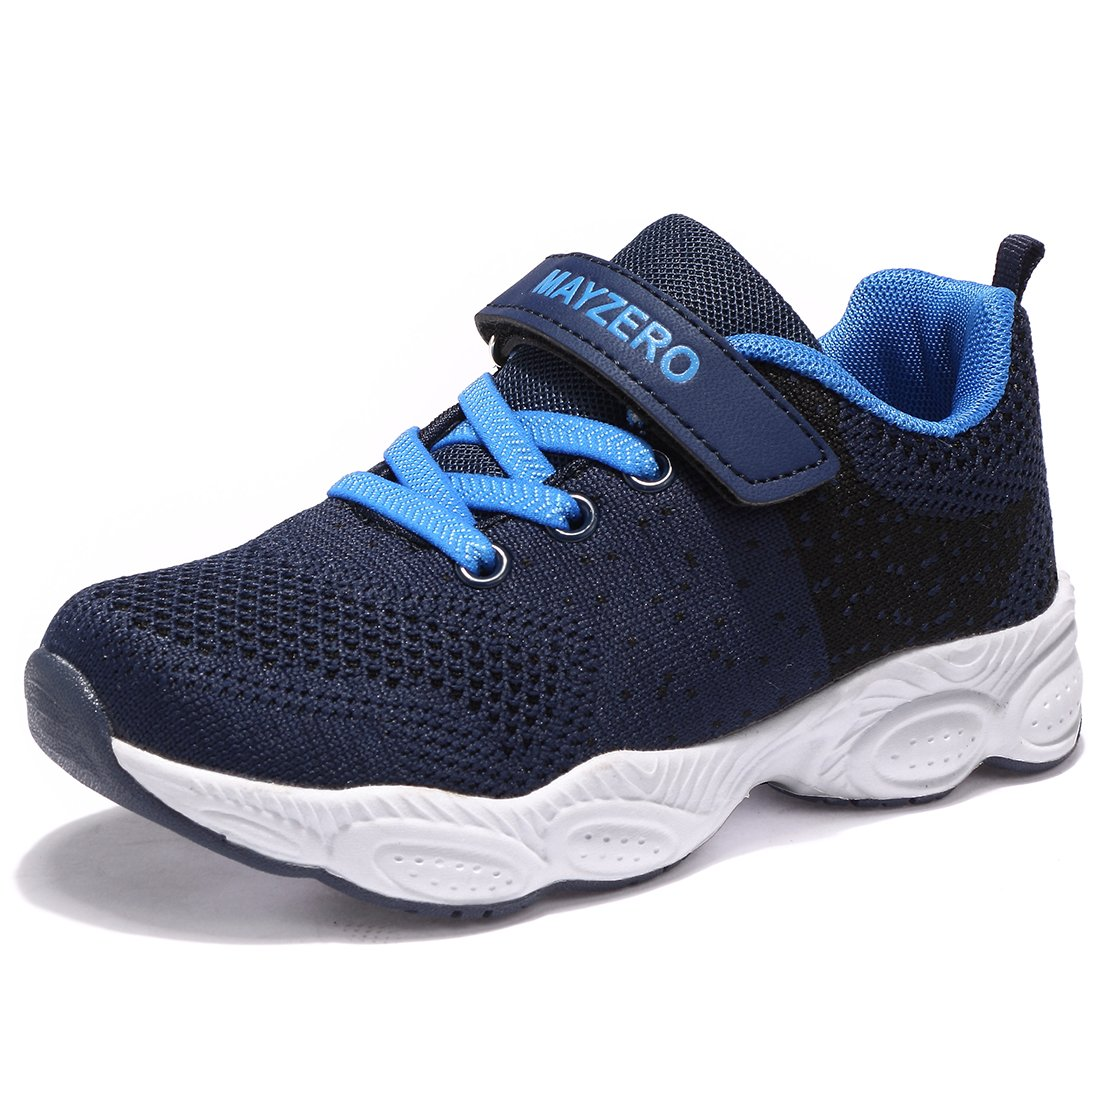 MAYZERO Kids Tennis Shoes Breathable Running Shoes Walking Shoes Fashion Sneakers for Boys and Girls YMS